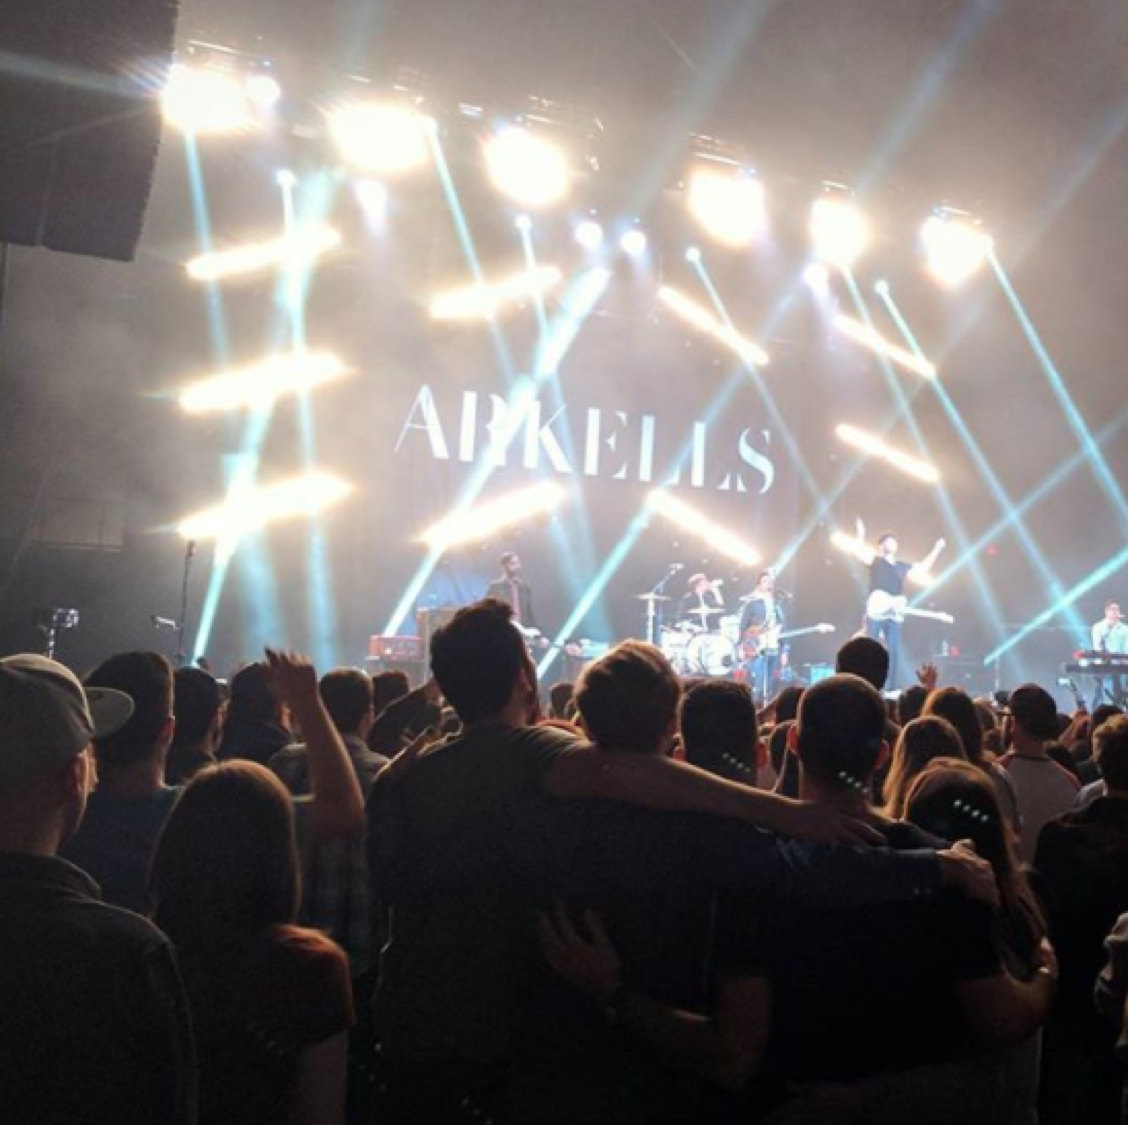 Thanks again, @arkellsmusic for coming back to the west coast! #arkells #canadianmade #youdontputbabyinacorner #indie #rockandroll #favouritethings #concerts #ubc #vancouverlife By @atomadam90